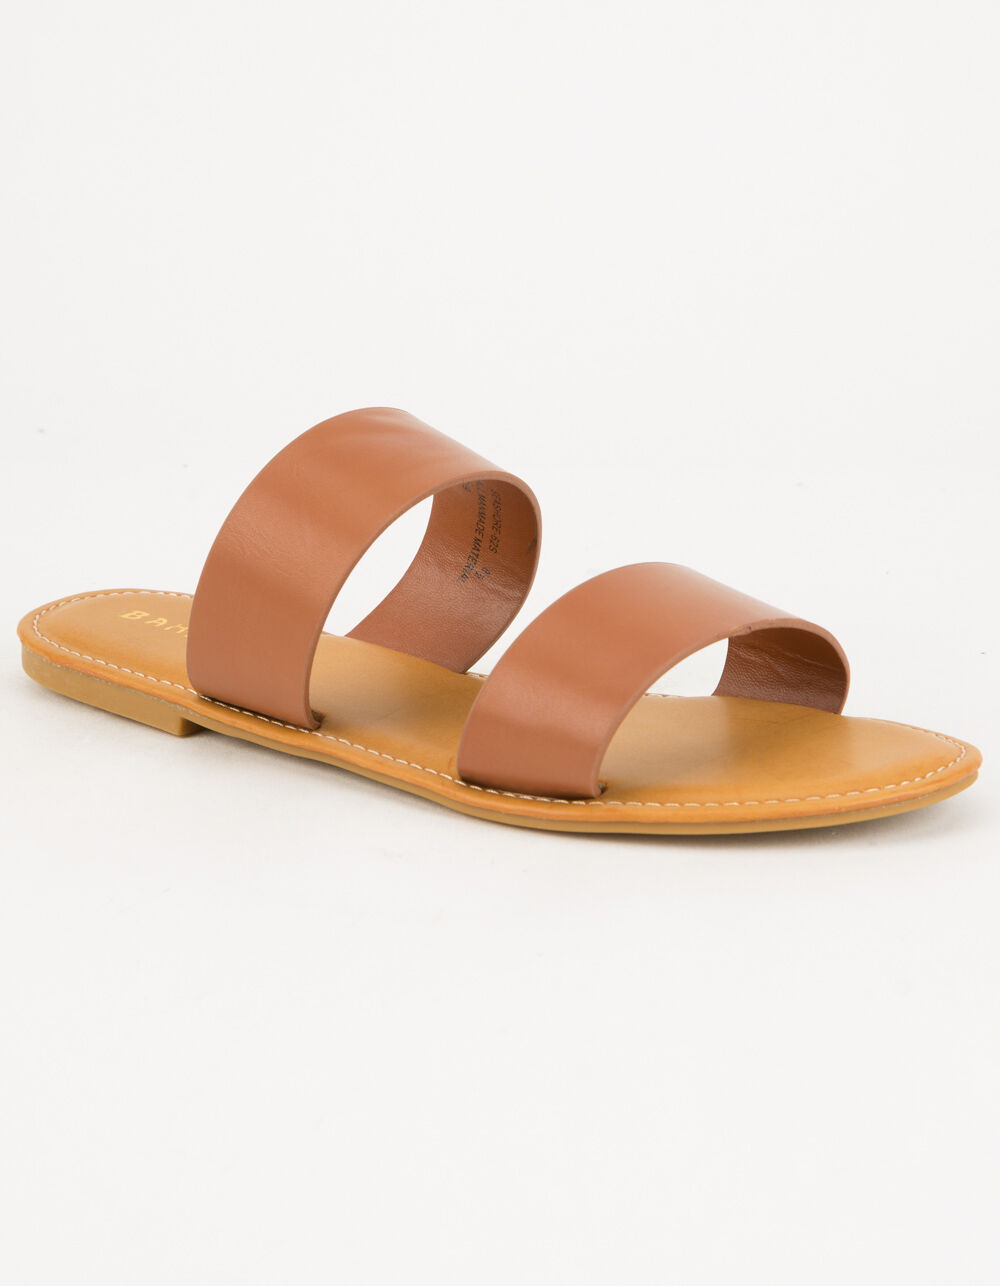 Image of BAMBOO DOUBLE STRAP TAN SANDALS